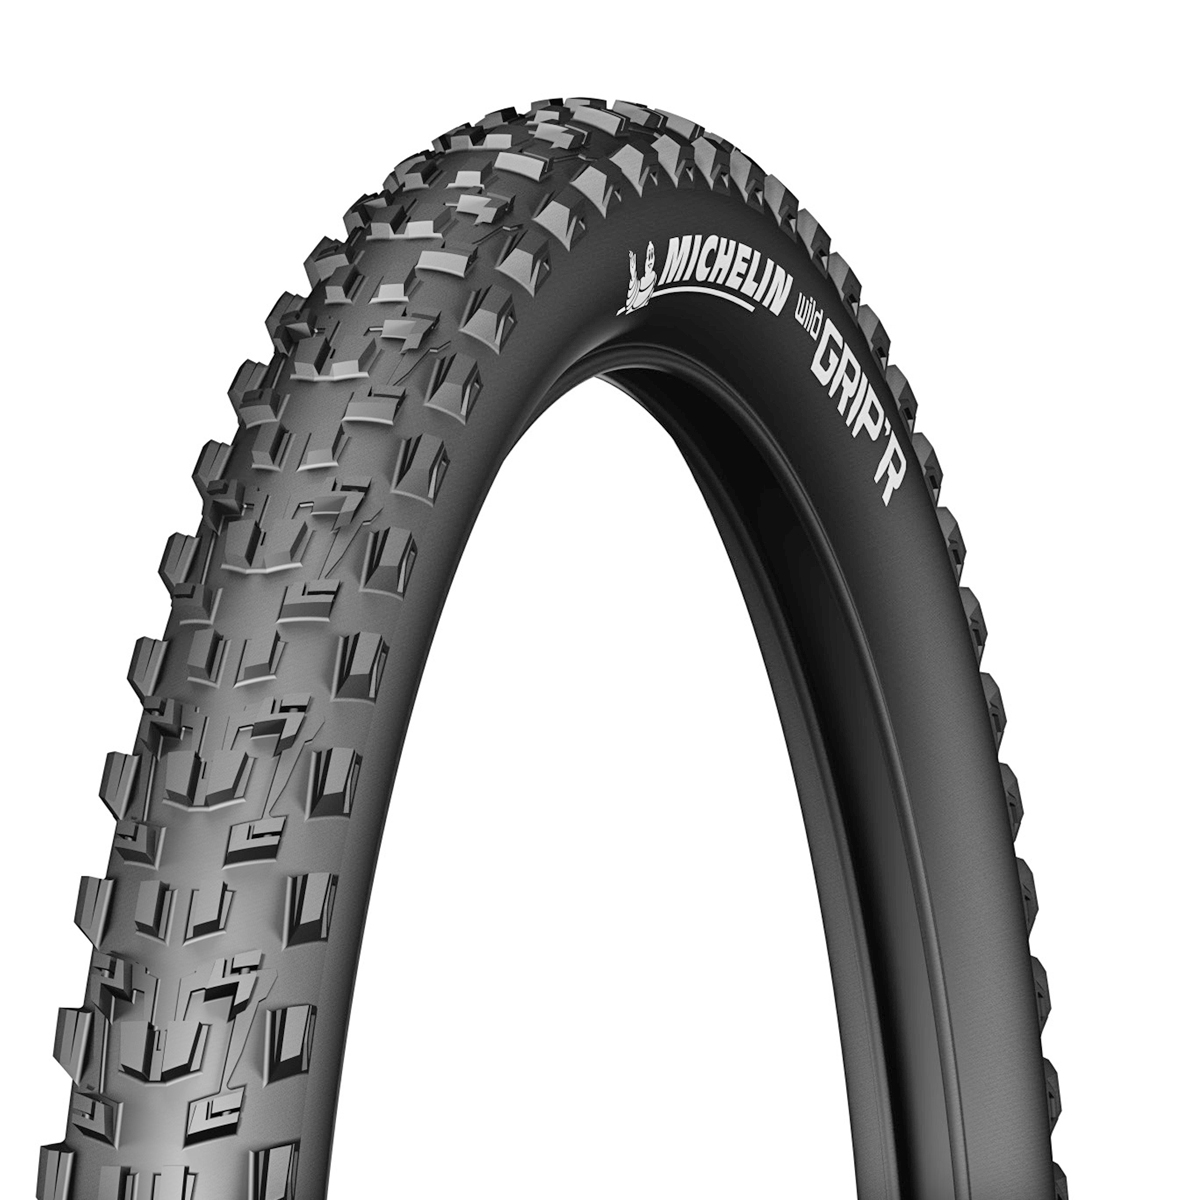 Pneu 26 x 2.25 Michelin Wild Grip'R (TS - TLR)